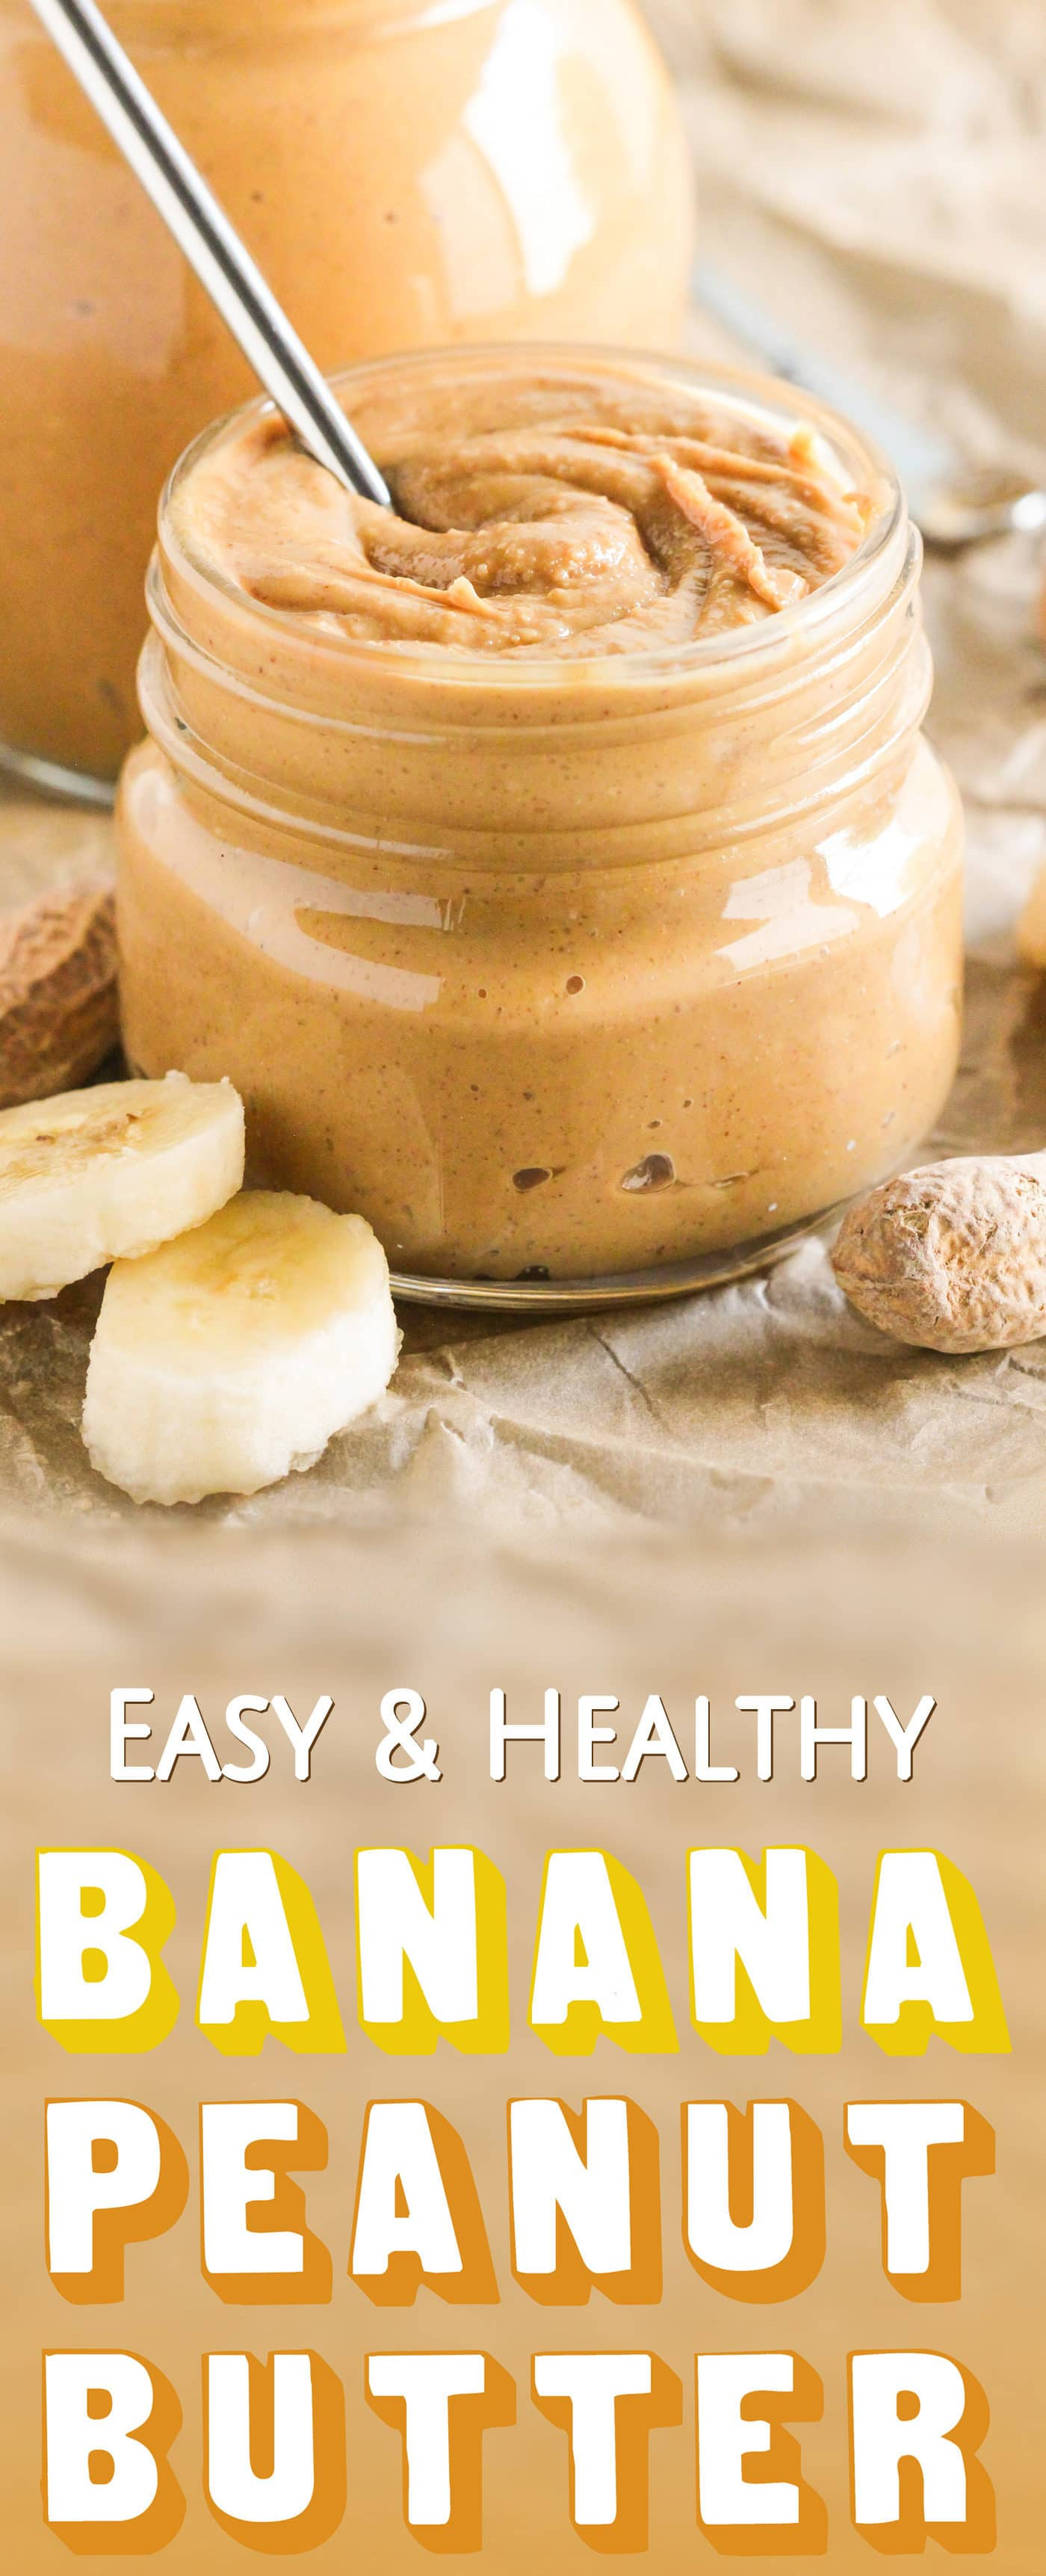 Healthy Homemade Banana Peanut Butter Spread! If you like bananas and if you like peanut butter, then you'll LOVE this. 100% delicious and perfect on toast, oatmeal, ice cream, or a spoon alone! No sugar added (refined sugar free), gluten free, vegan. Healthy Dessert Recipes with low calorie, low fat, low carb, high protein, dairy free, vegan, and raw options at the Desserts With Benefits Blog (www.DessertsWithBenefits.com)